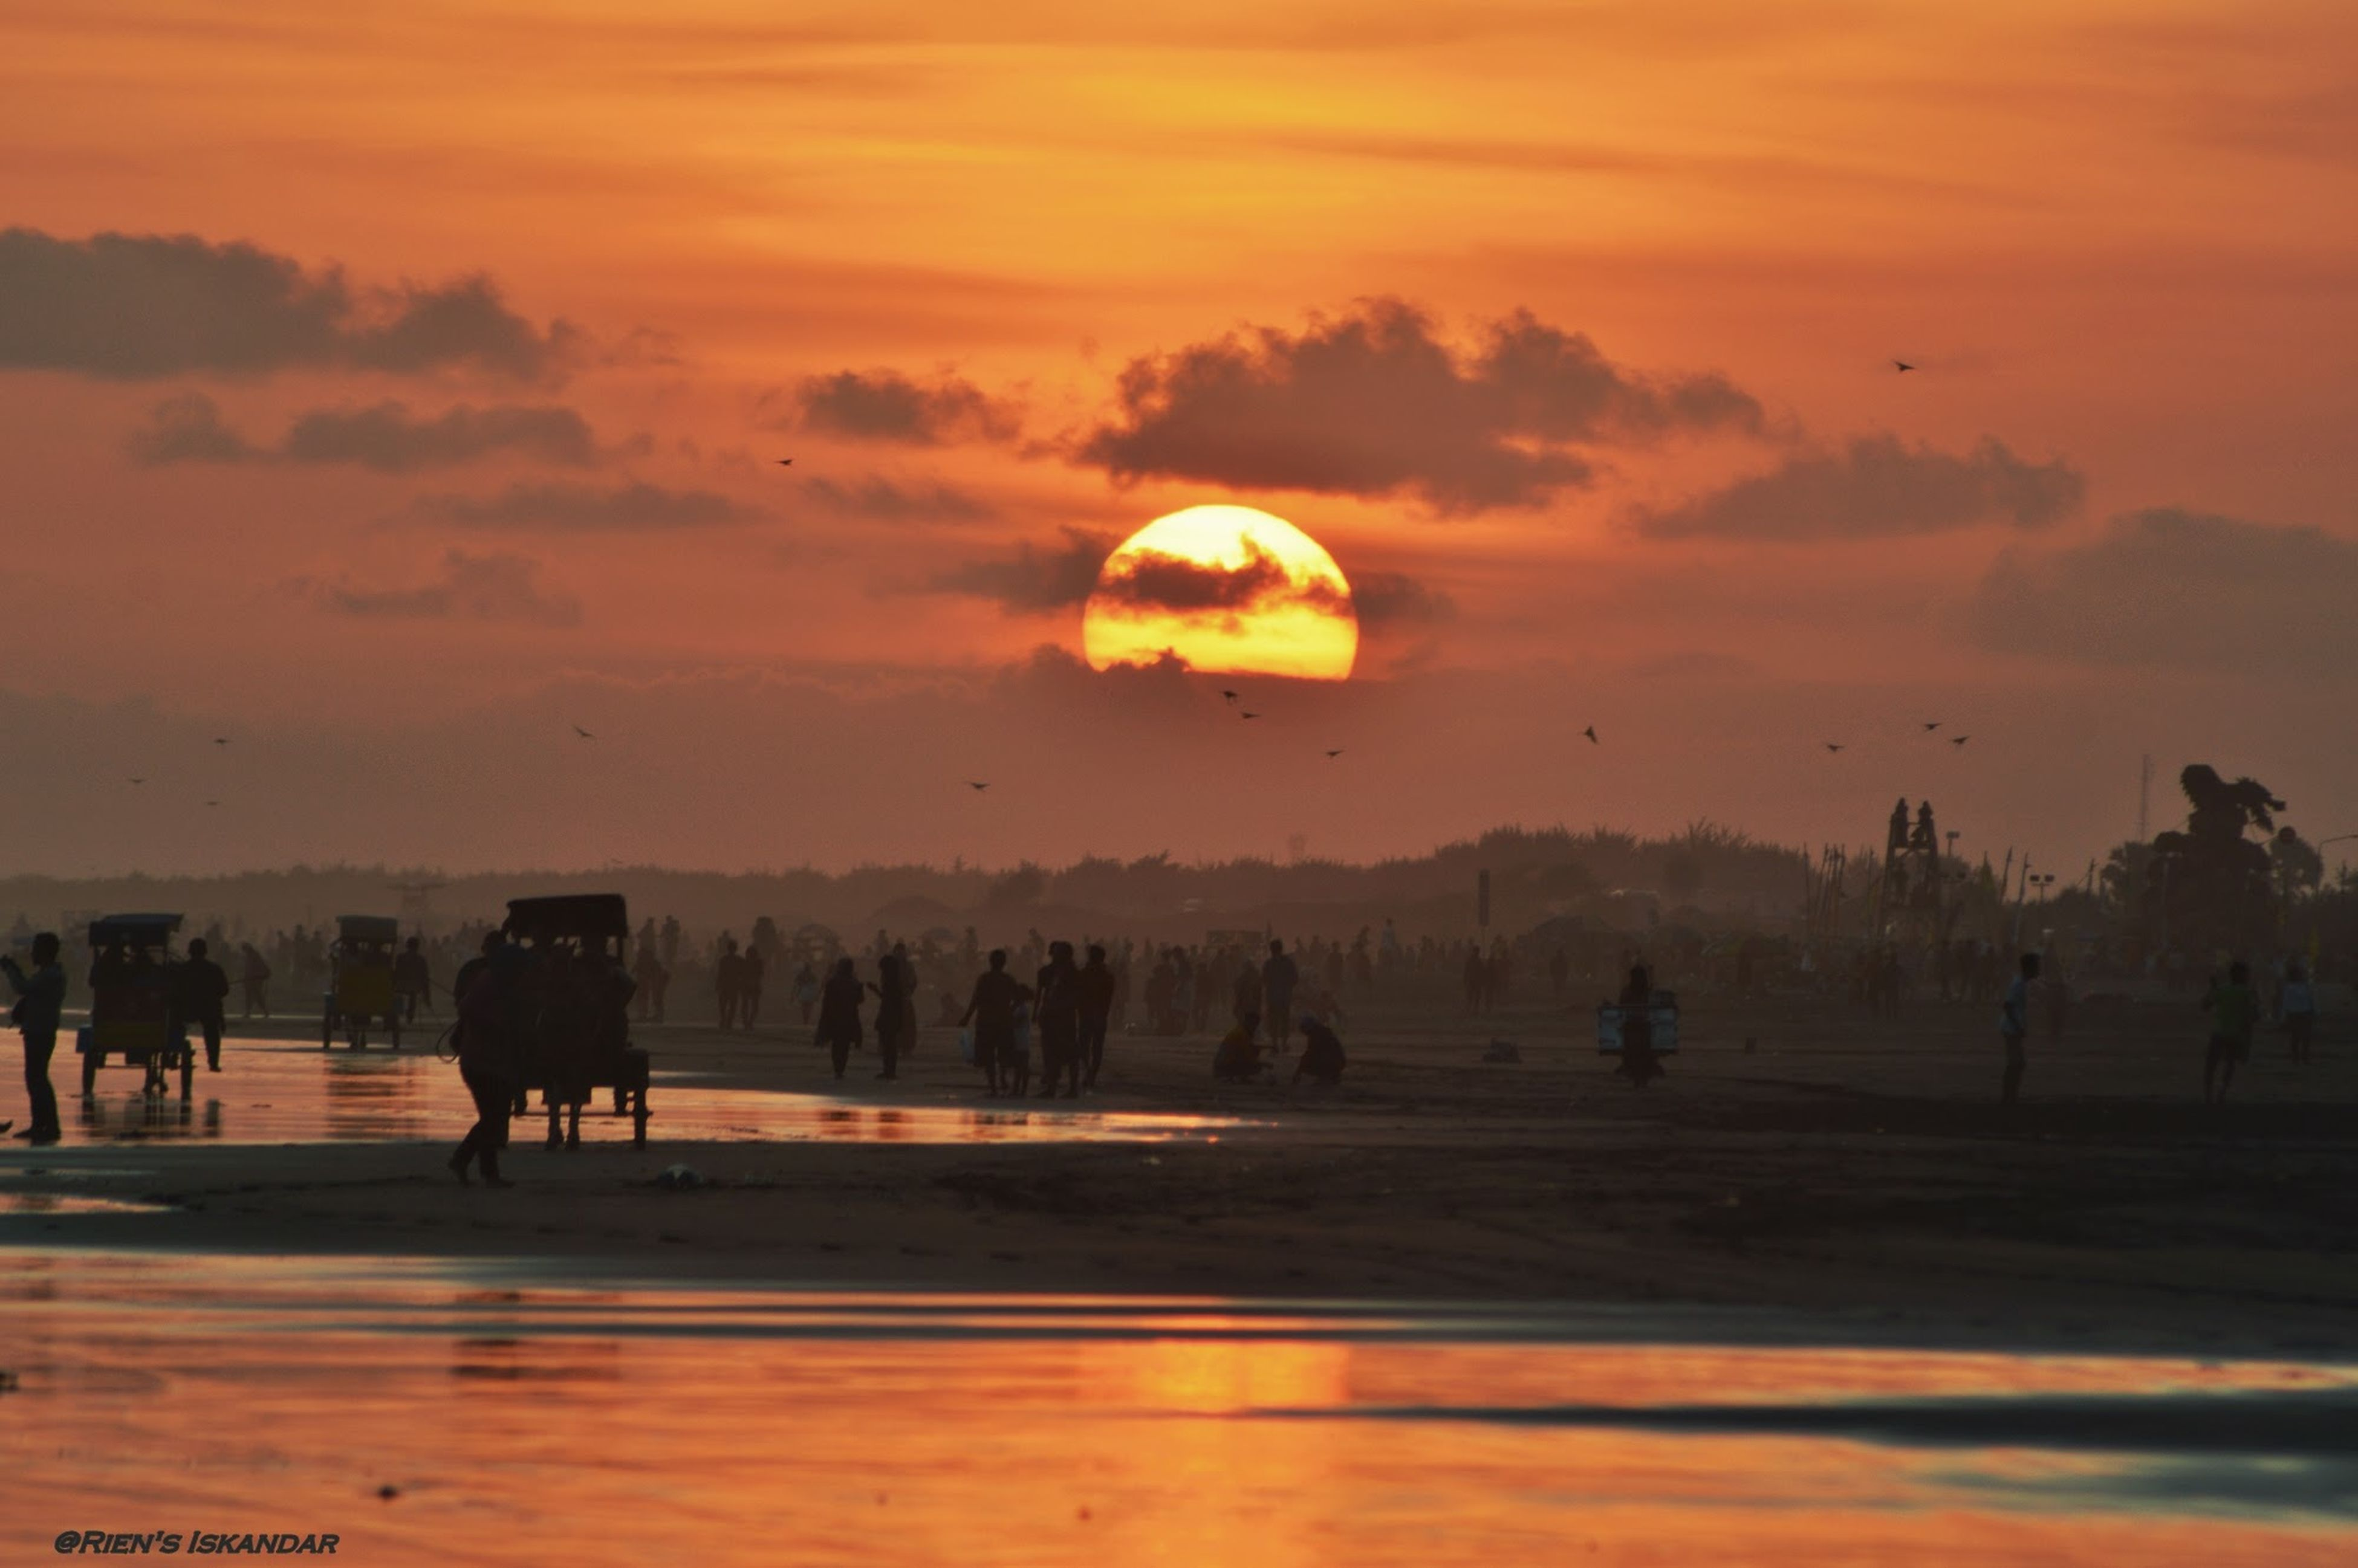 sunset, sky, leisure activity, large group of people, lifestyles, beach, orange color, silhouette, men, enjoyment, scenics, cloud - sky, sea, vacations, sun, fun, beauty in nature, tourist, person